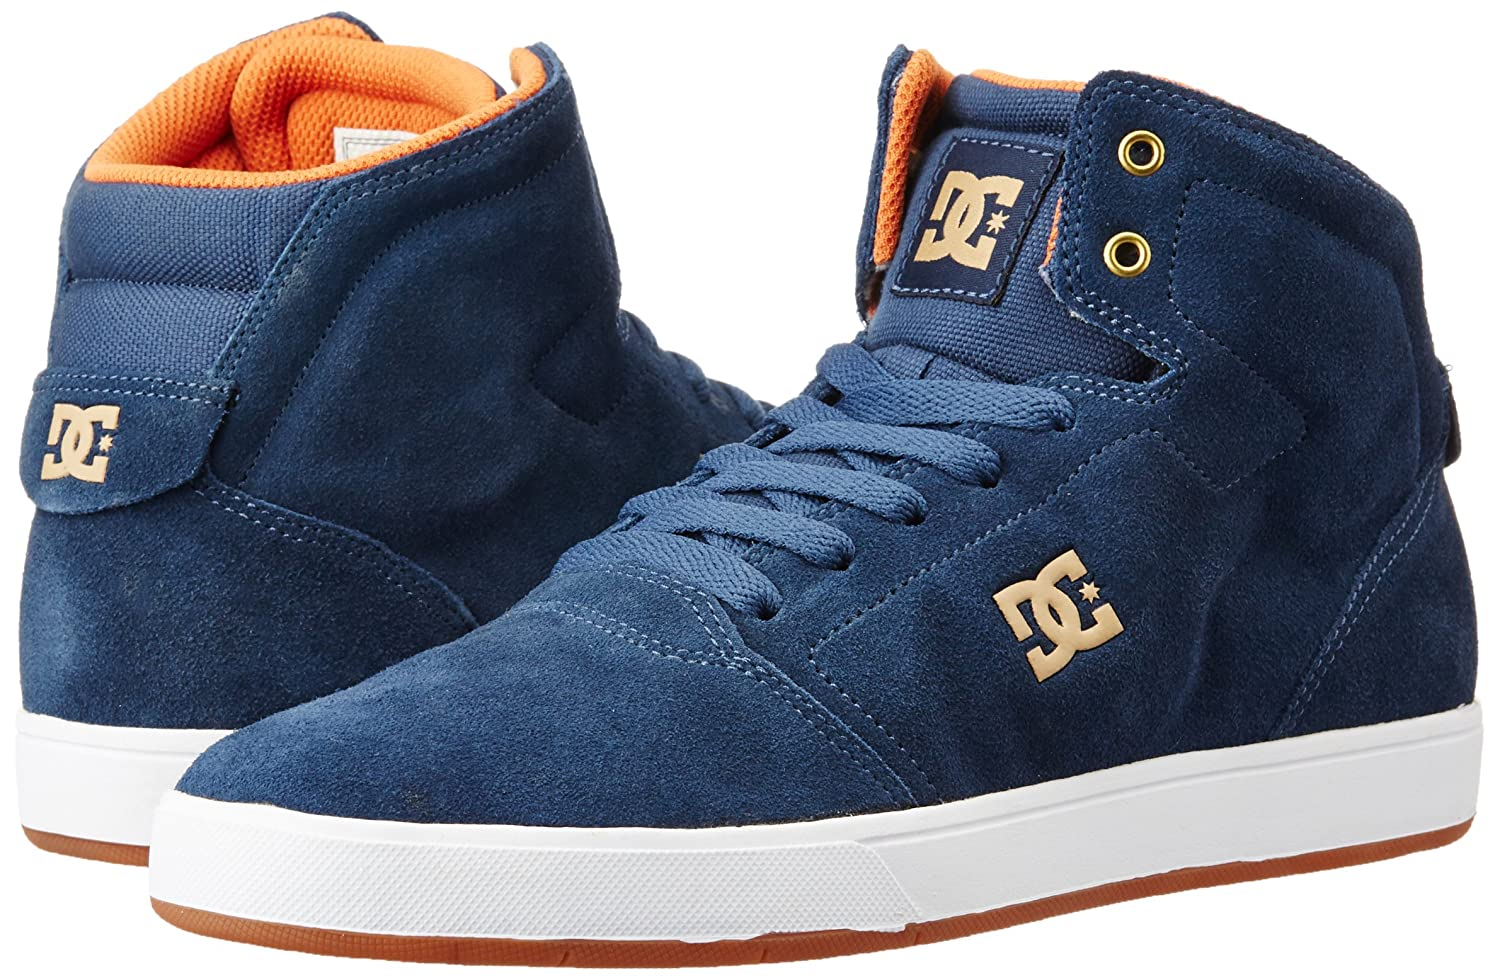 DC Men s Crisis High Navy Leather Sneakers - 5.5 UK India (38.5 EU)(6.5  US)  Buy Online at Low Prices in India - Amazon.in f2aff2998fdd9